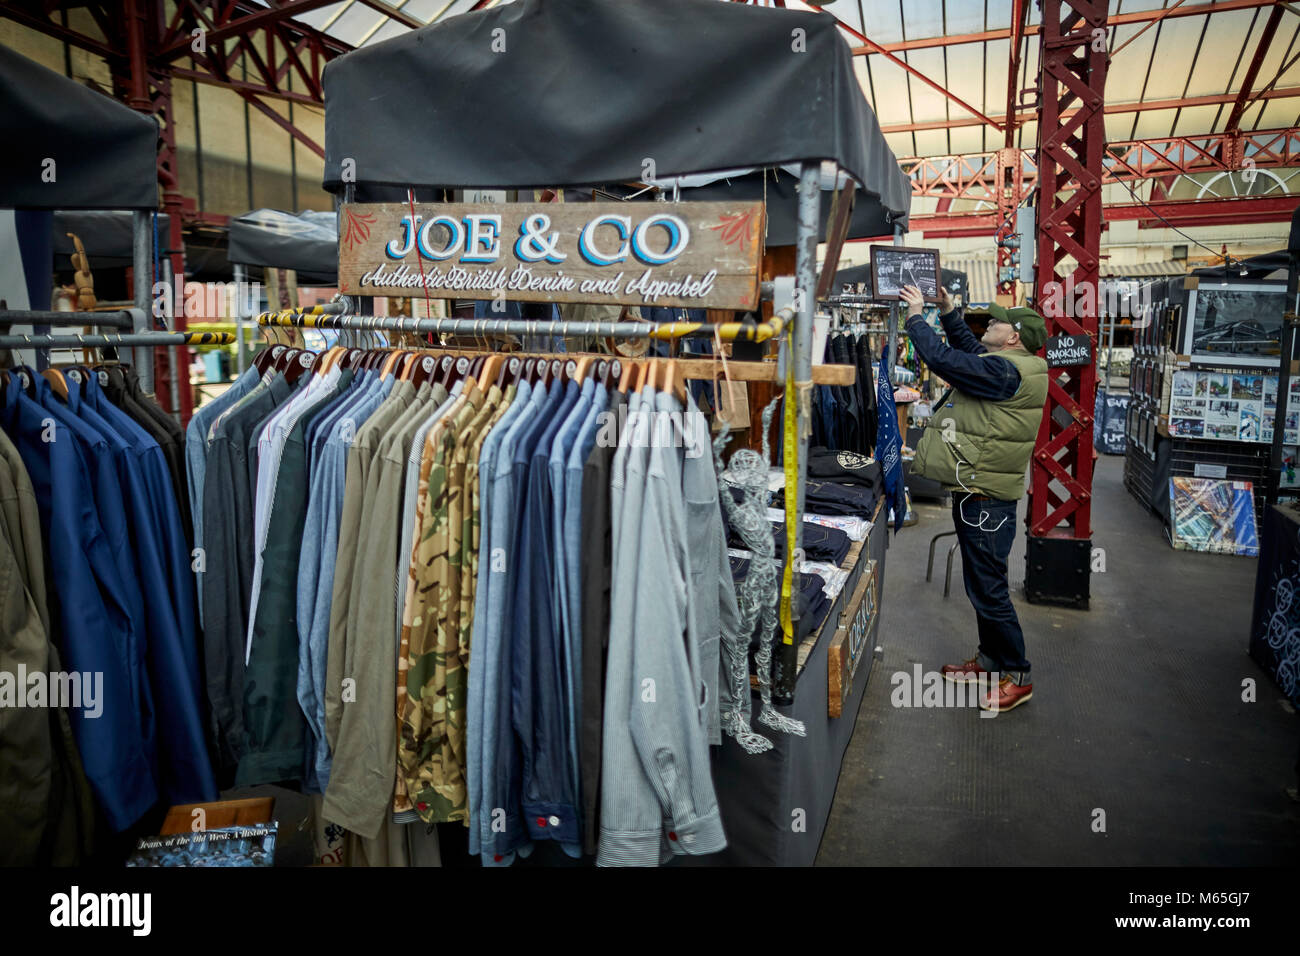 Joe's clothing store